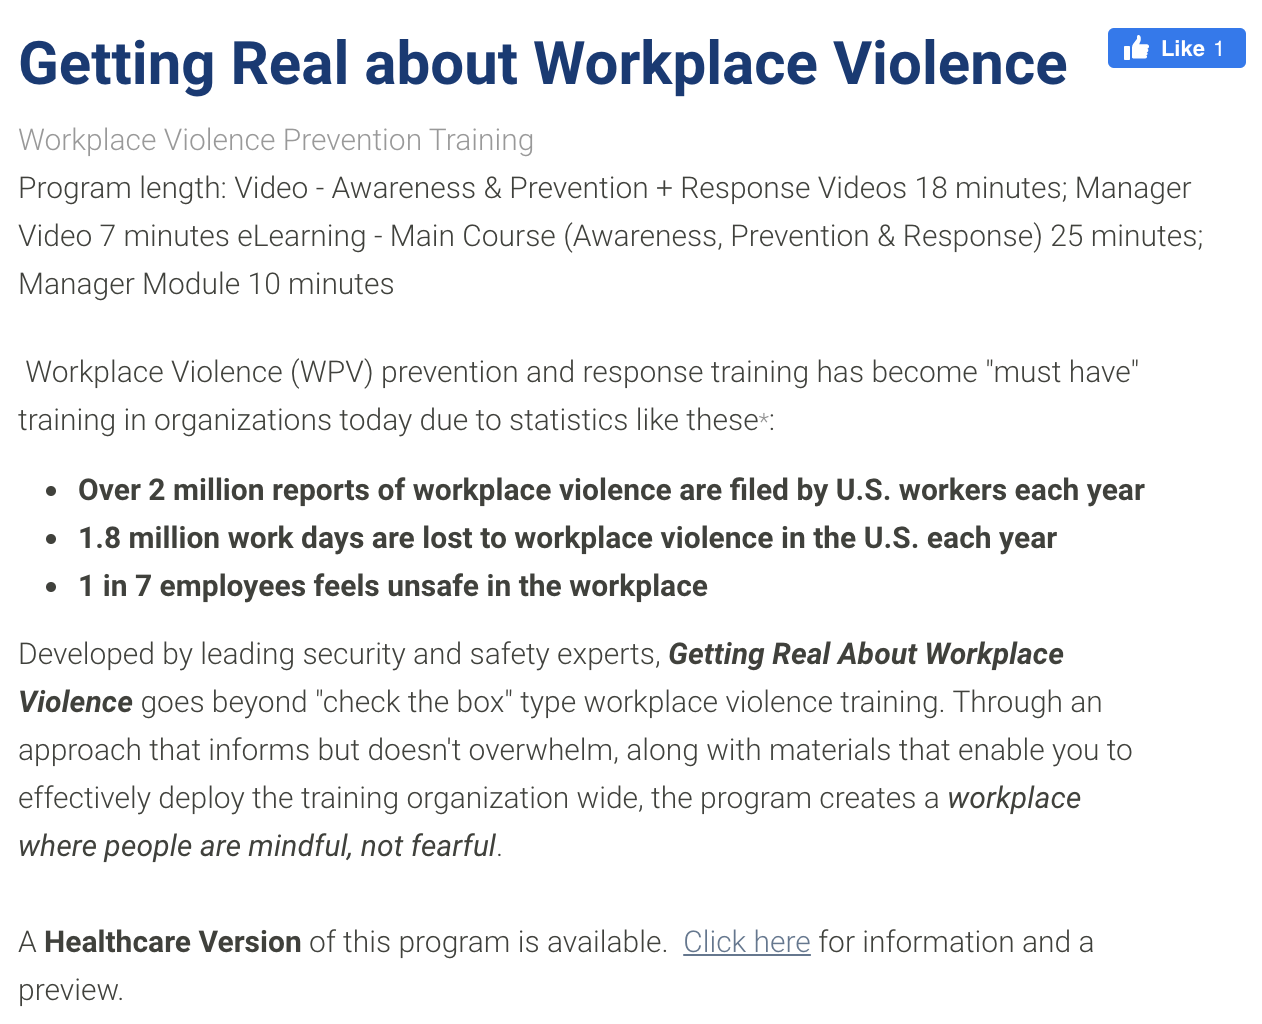 Workplace Violence Prevention Training Course - Getting Real About Workplace Violence from Media Partners